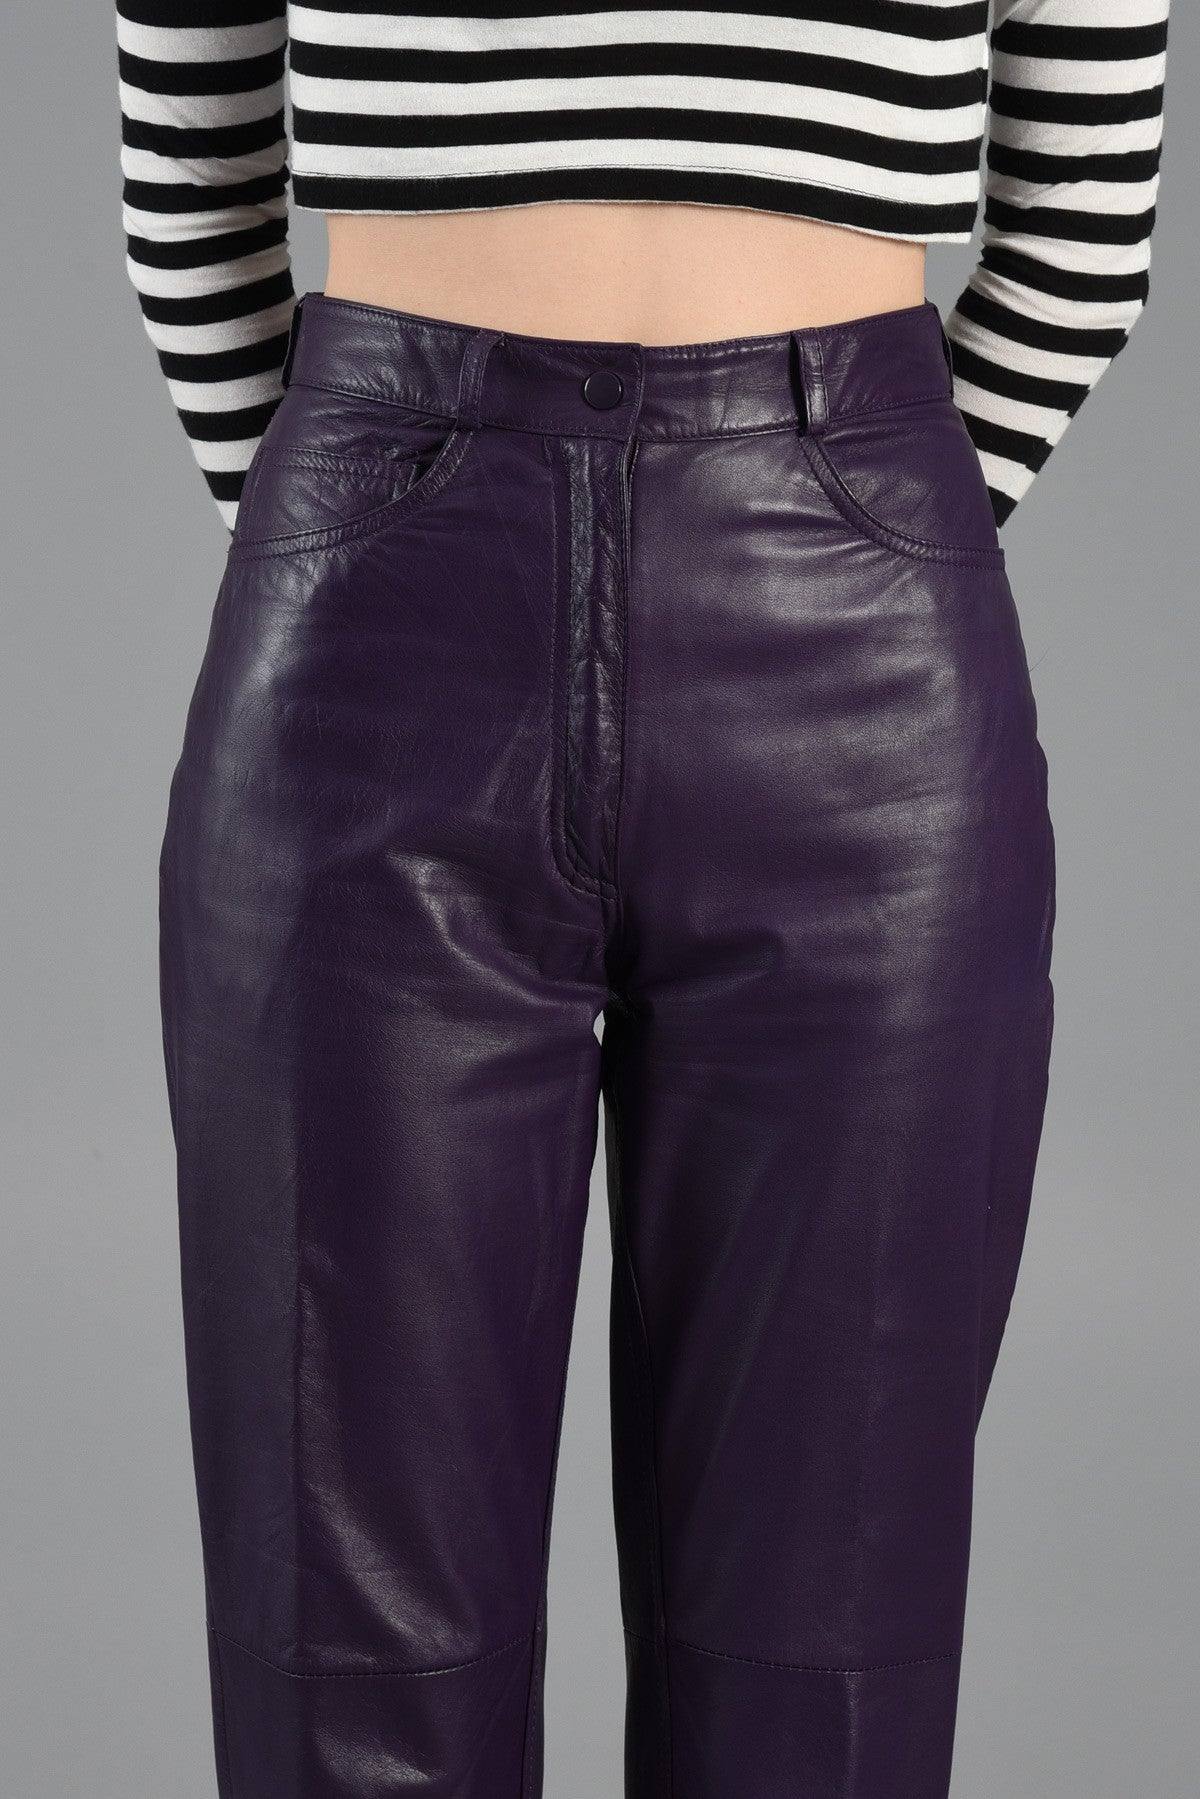 Find great deals on eBay for high waist leather pants. Shop with confidence.